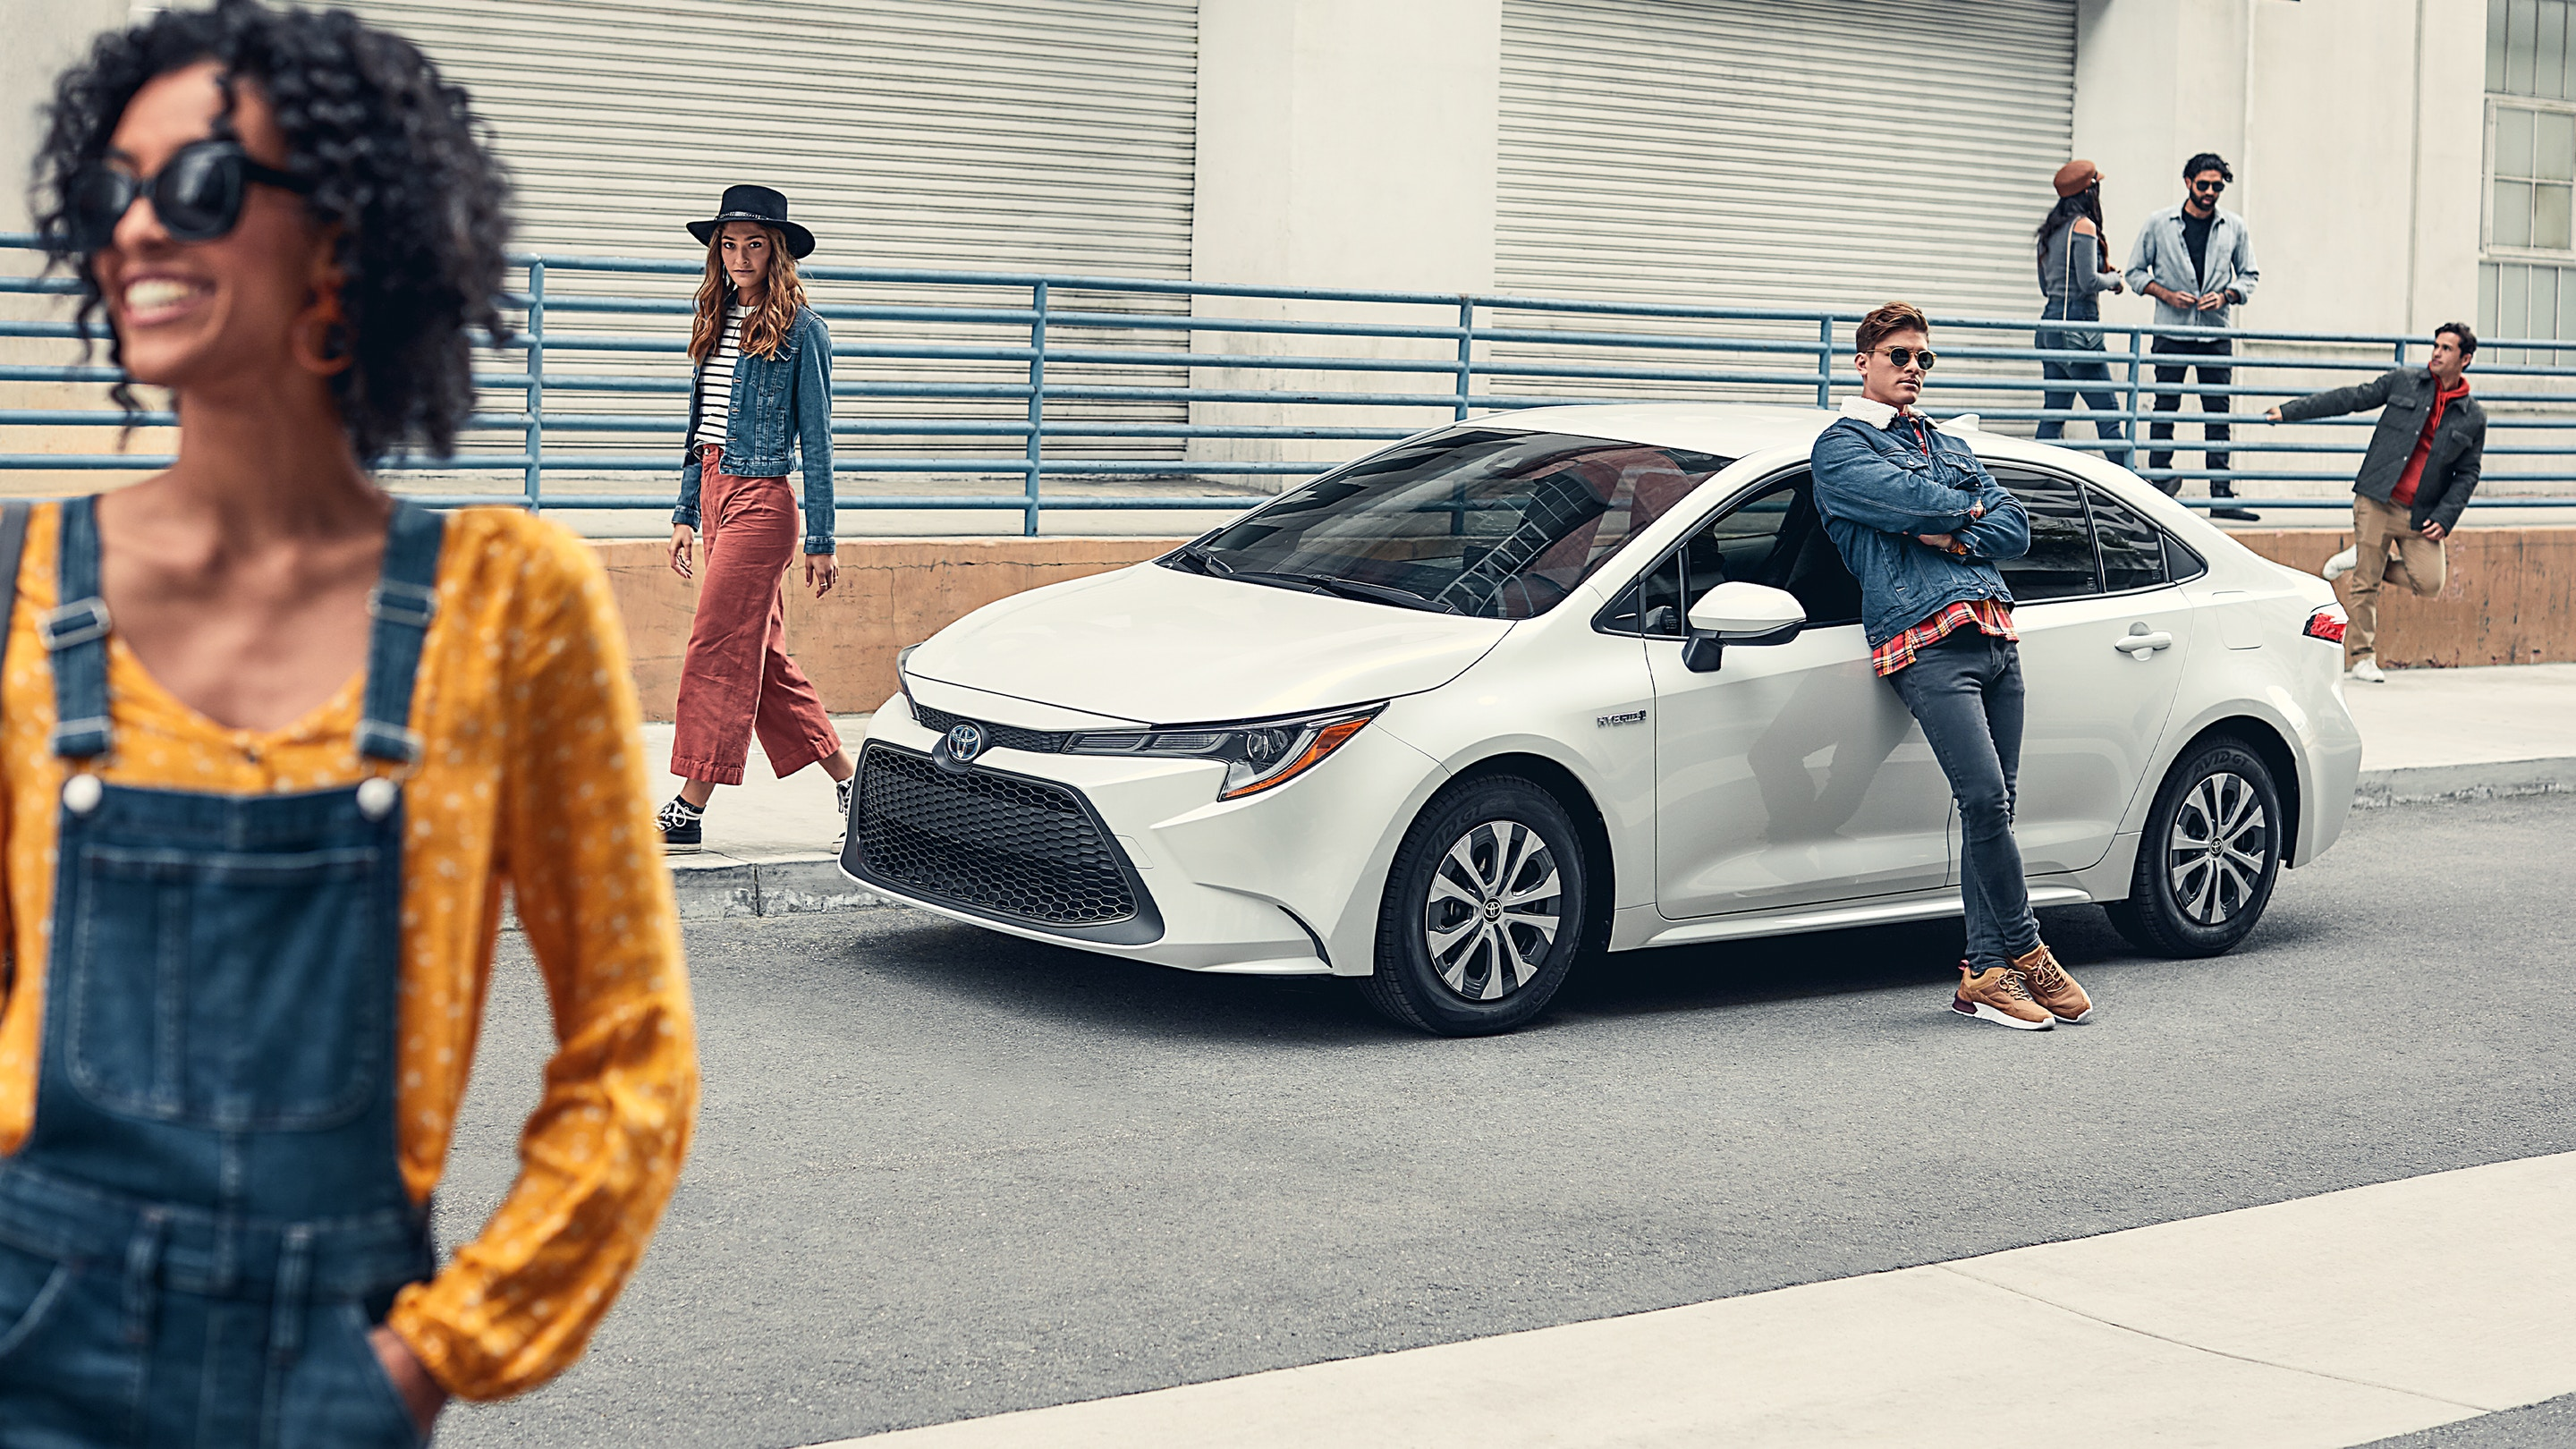 2020 Toyota Corolla for Sale near Ypsilanti, MI